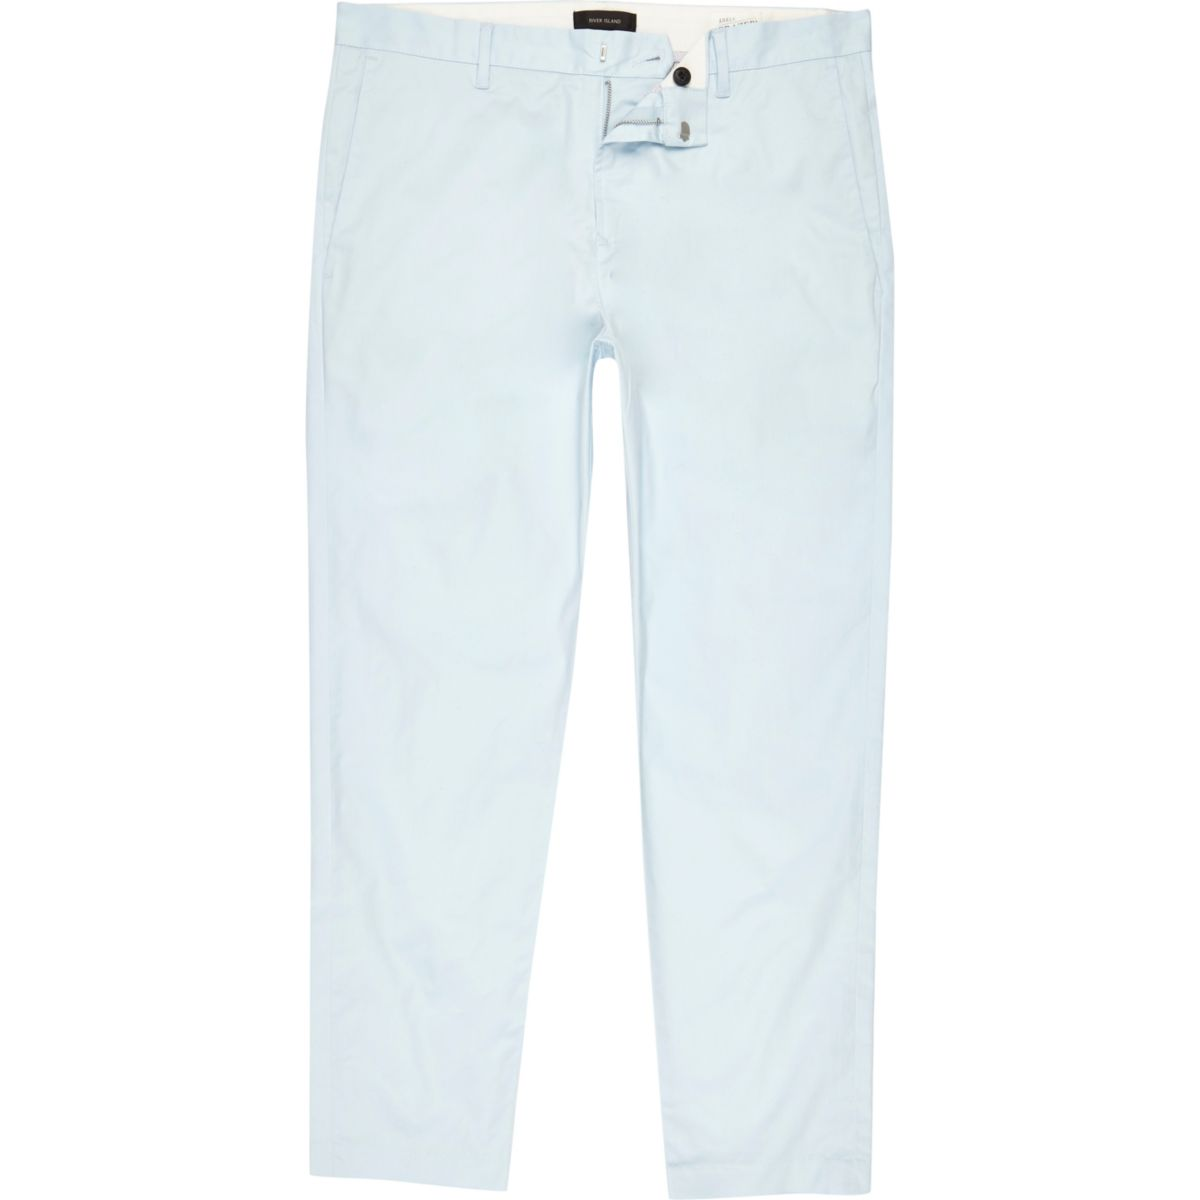 Light blue slim ankle grazer chino trousers